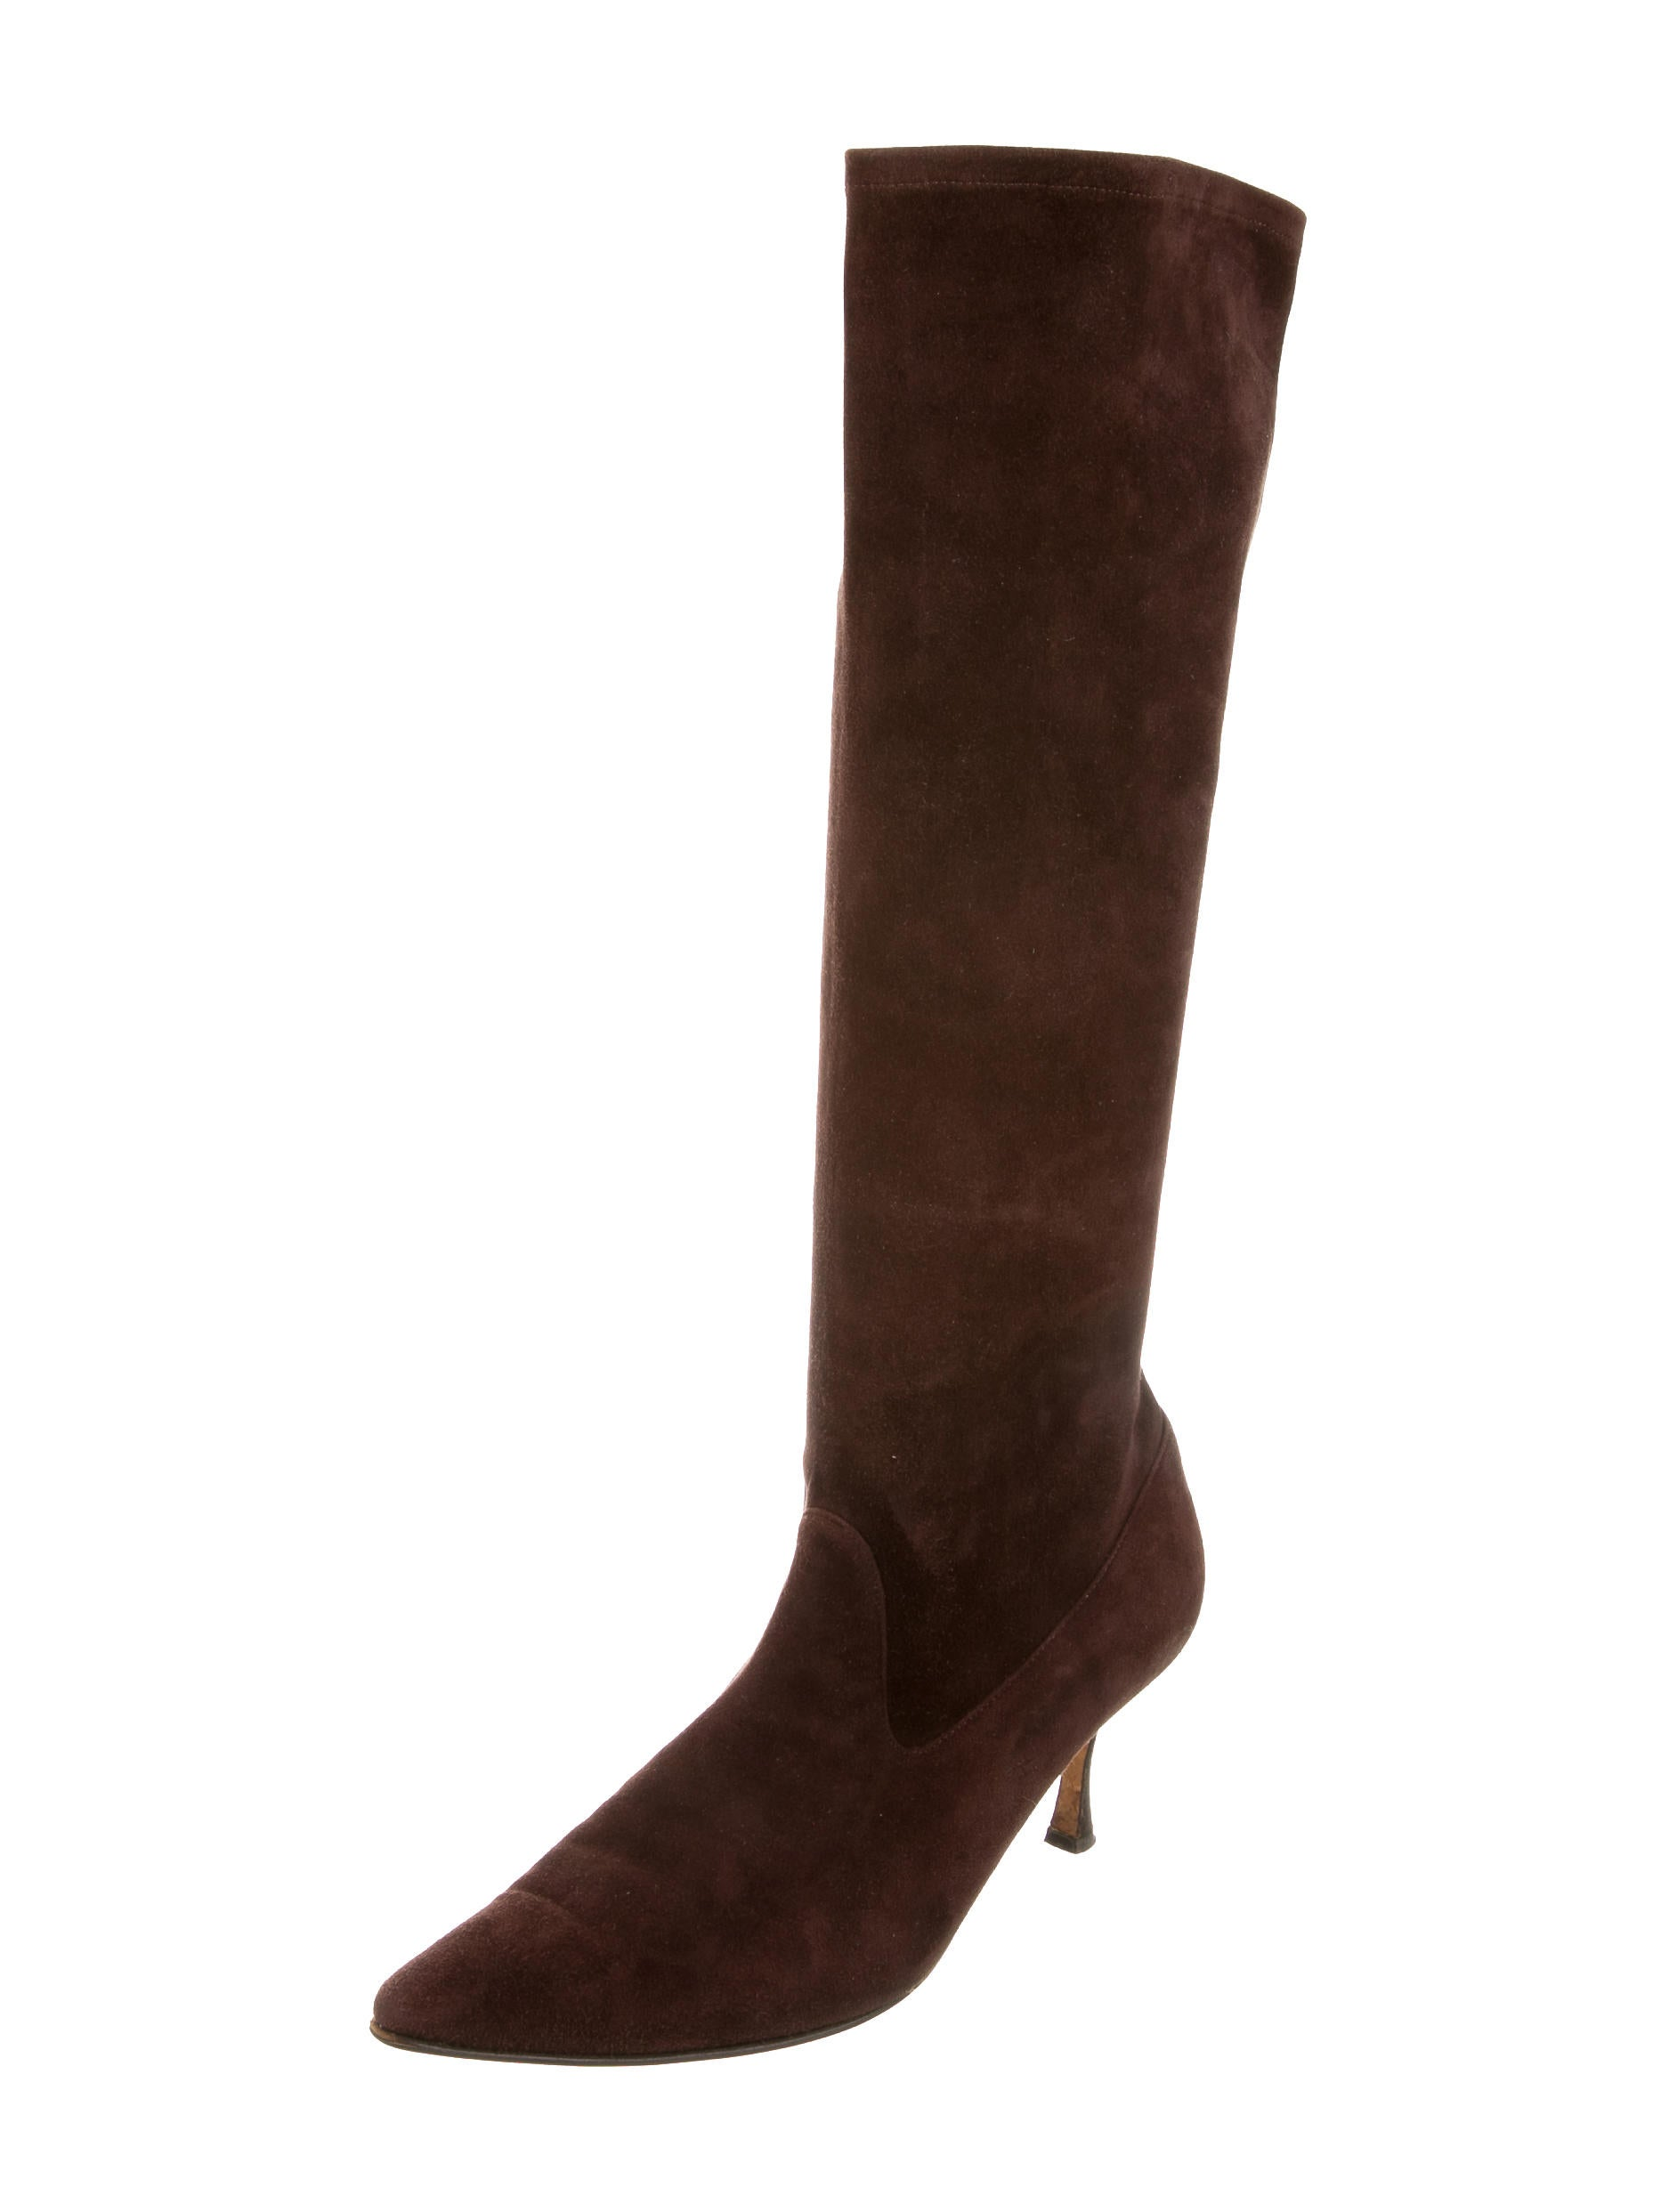 manolo blahnik suede pointed toe boots shoes moo61064